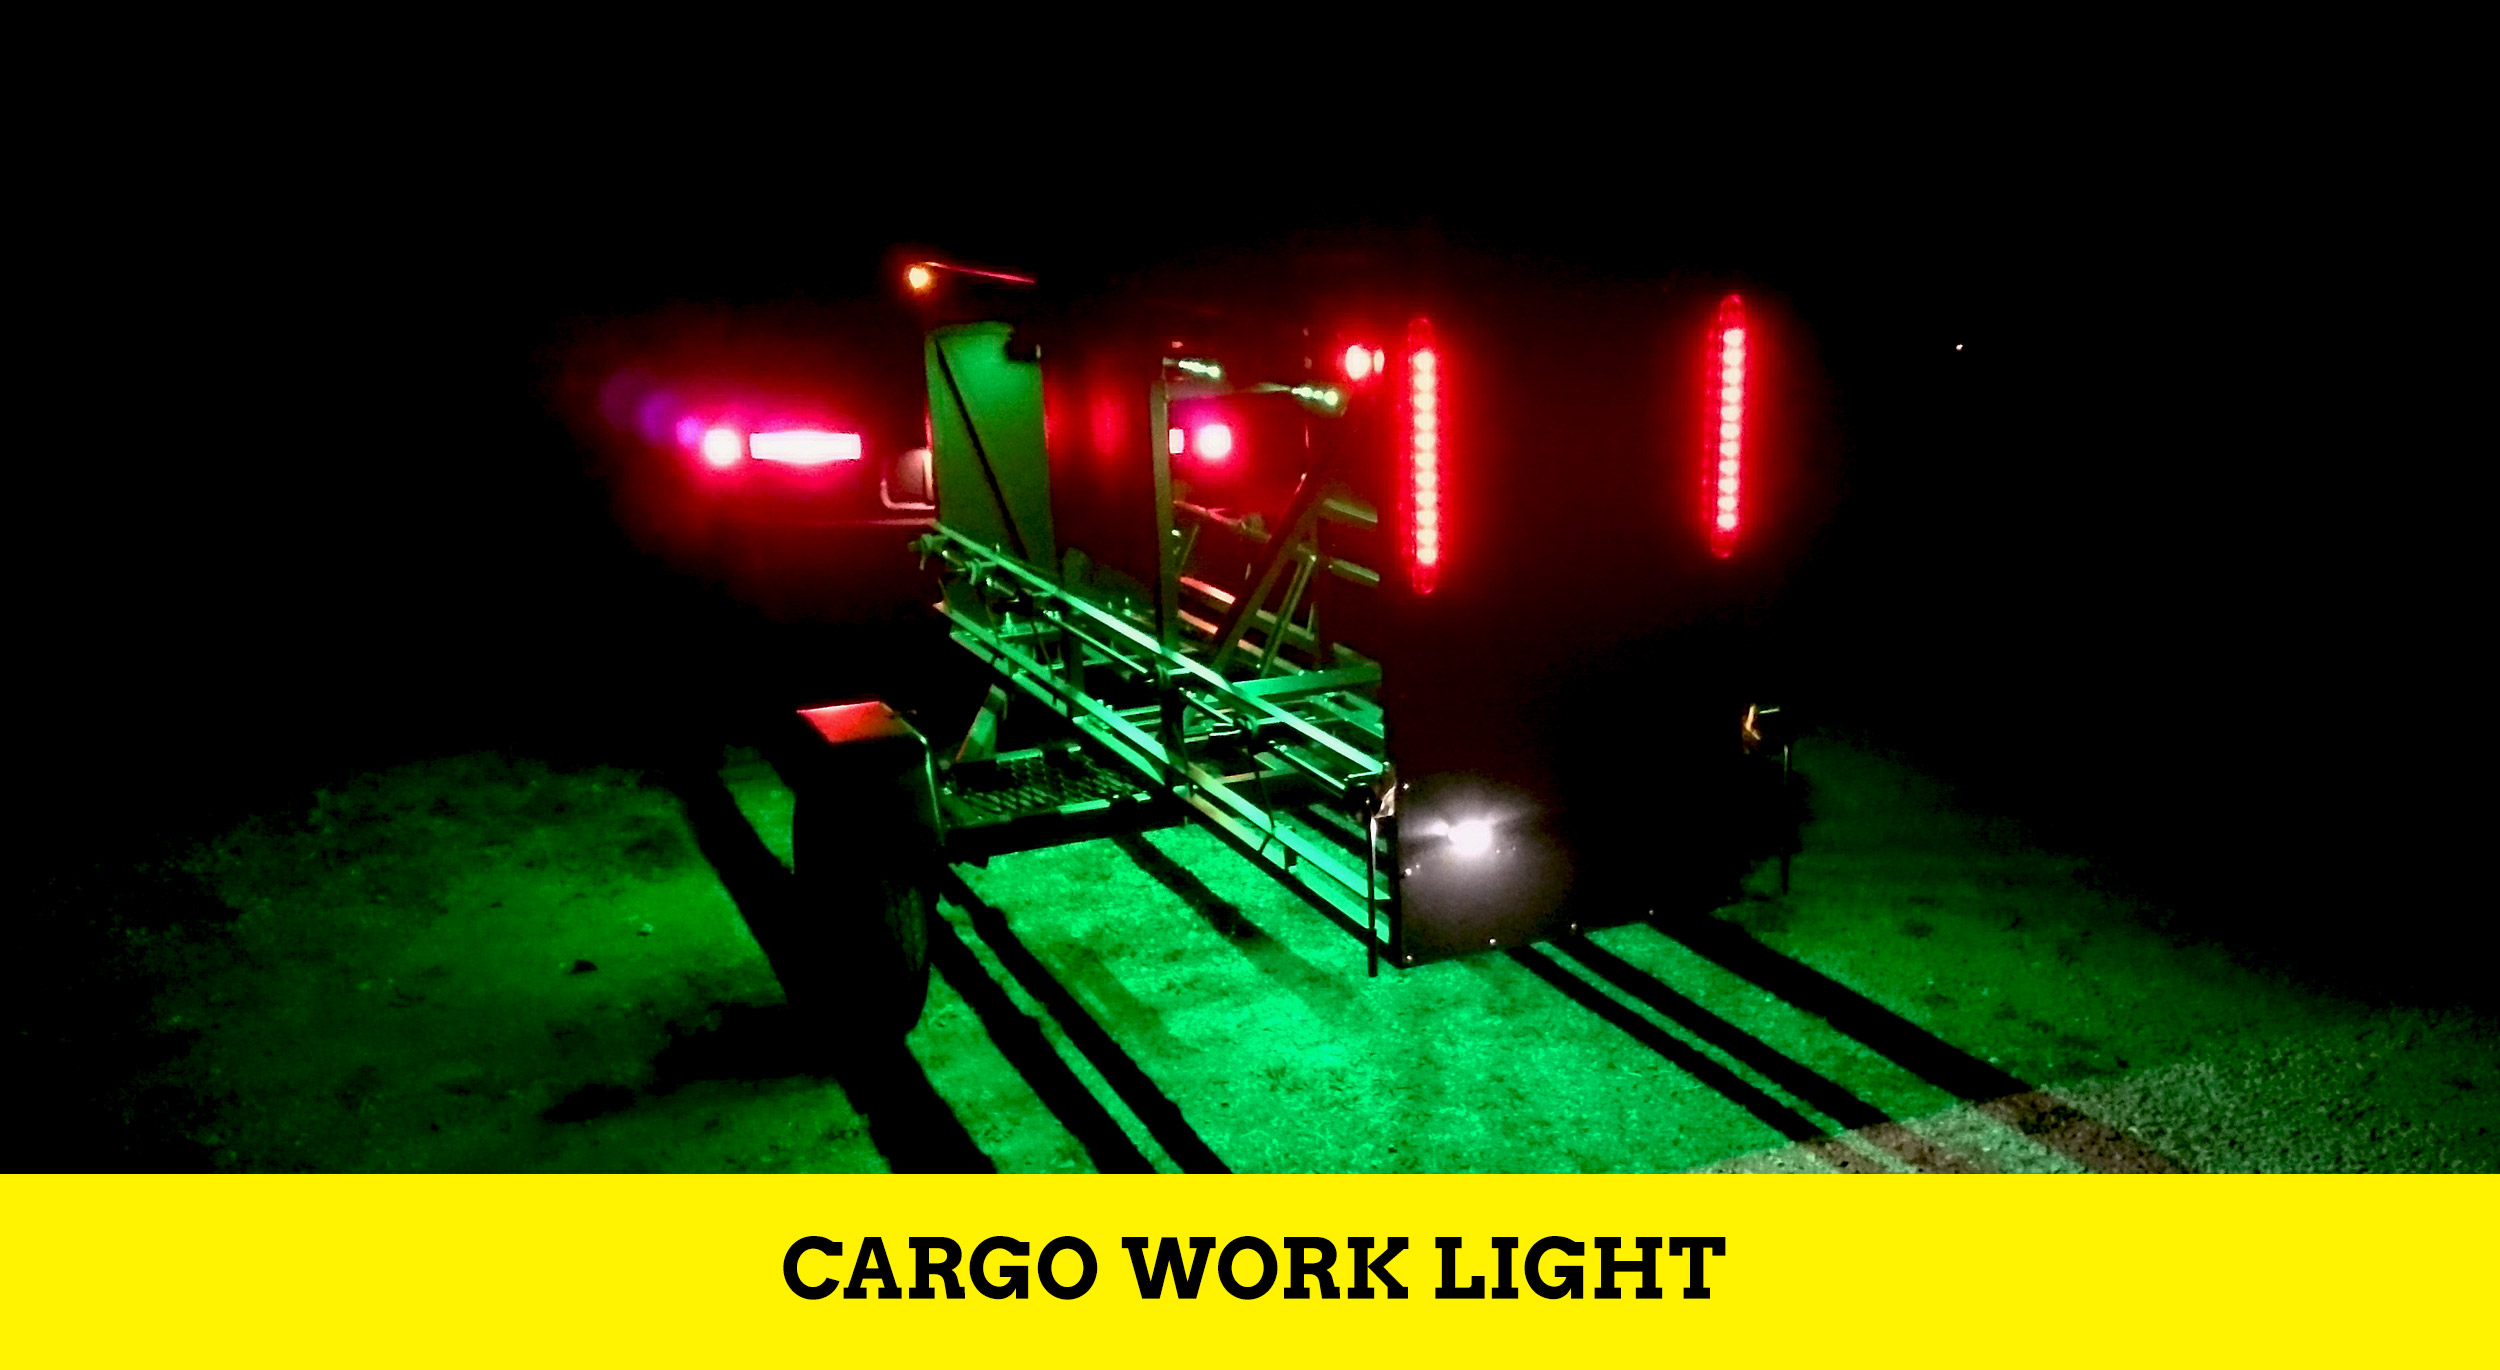 Huckwagons Mountain Bike Shuttle Trailer Cargo work lightCargo work light cargo work light